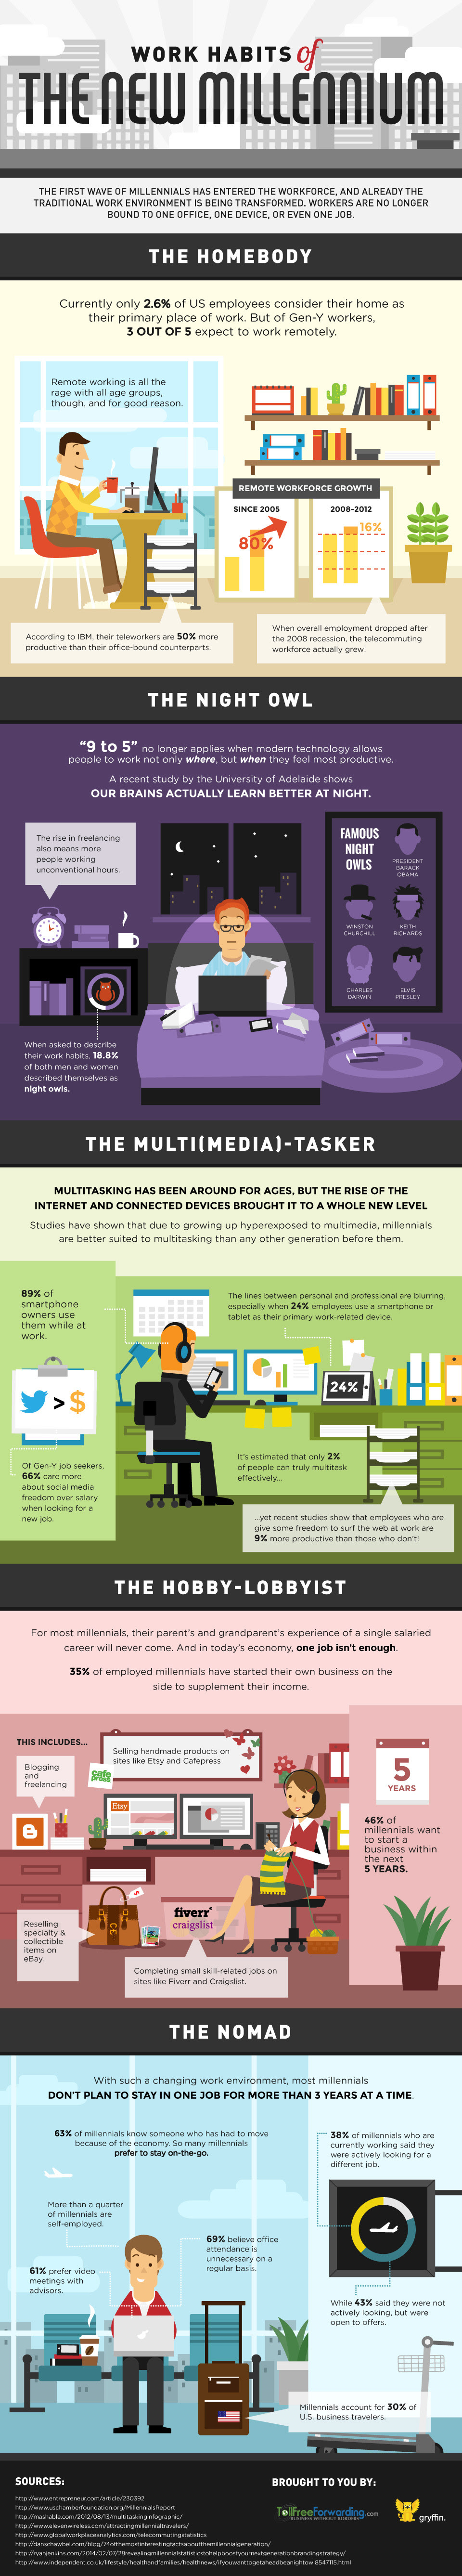 Infographic: Work Habits of the New Millennium